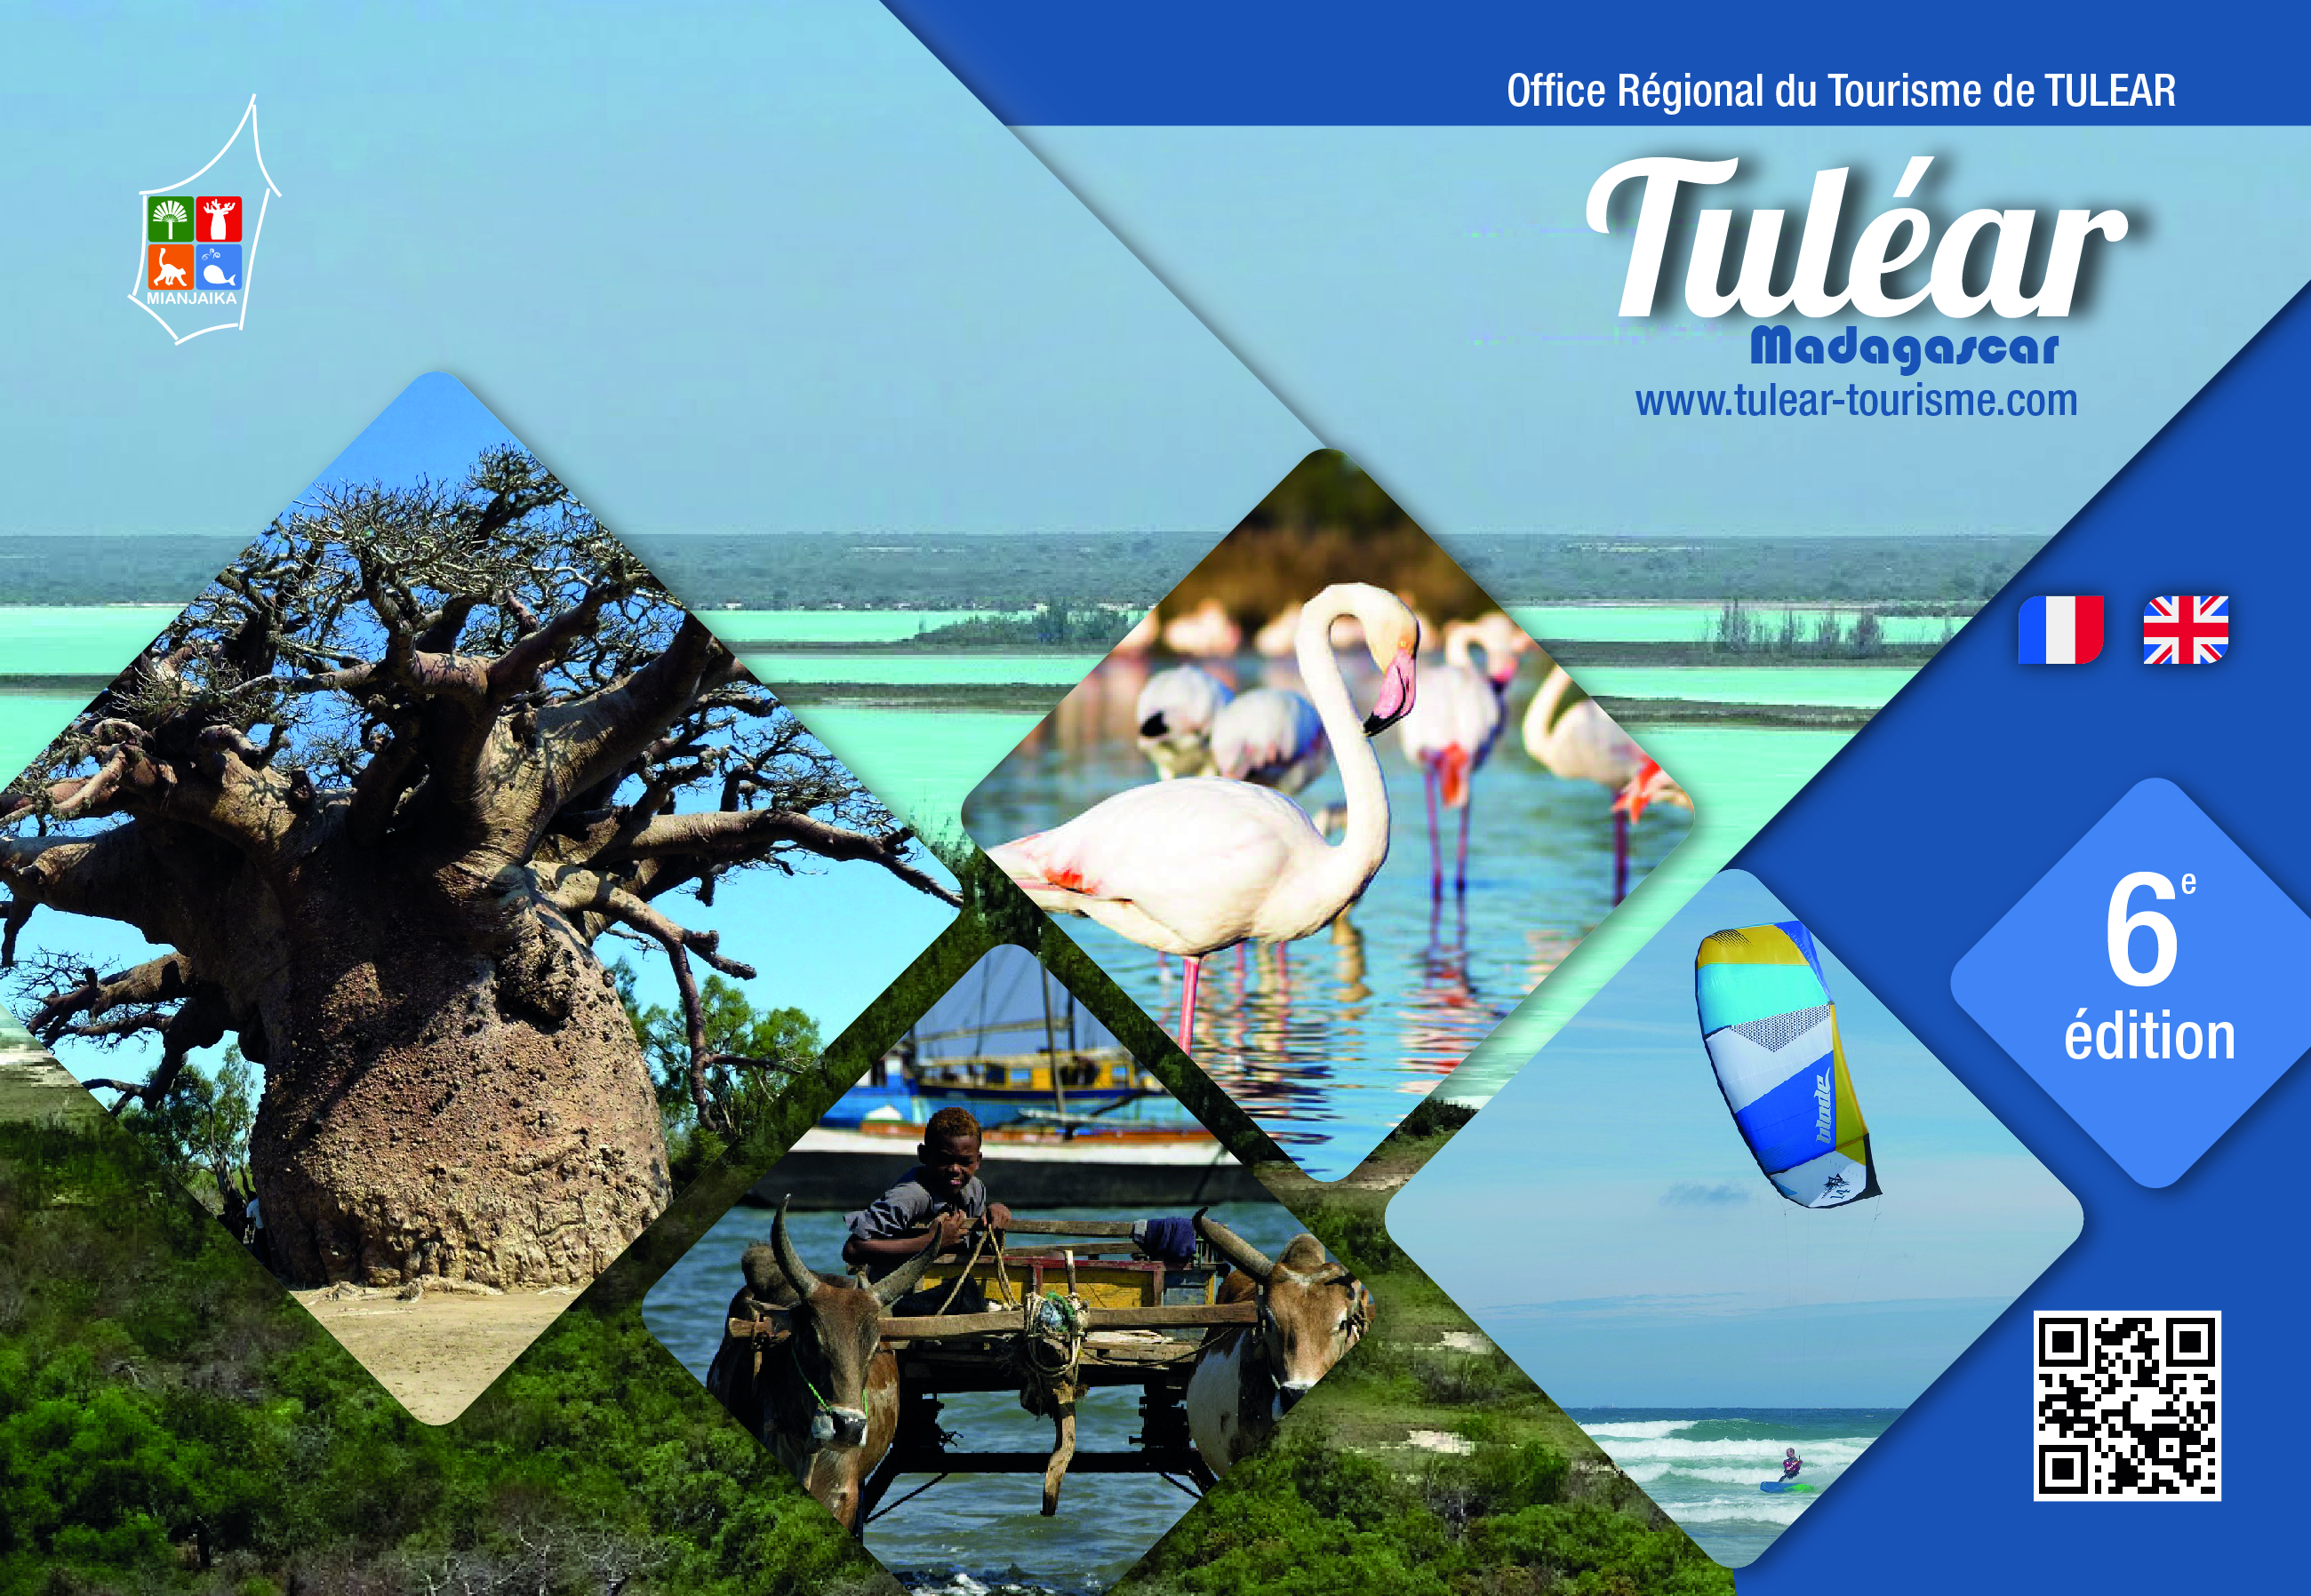 OFFICE REGIONAL DU TOURISME brochure tulear_6